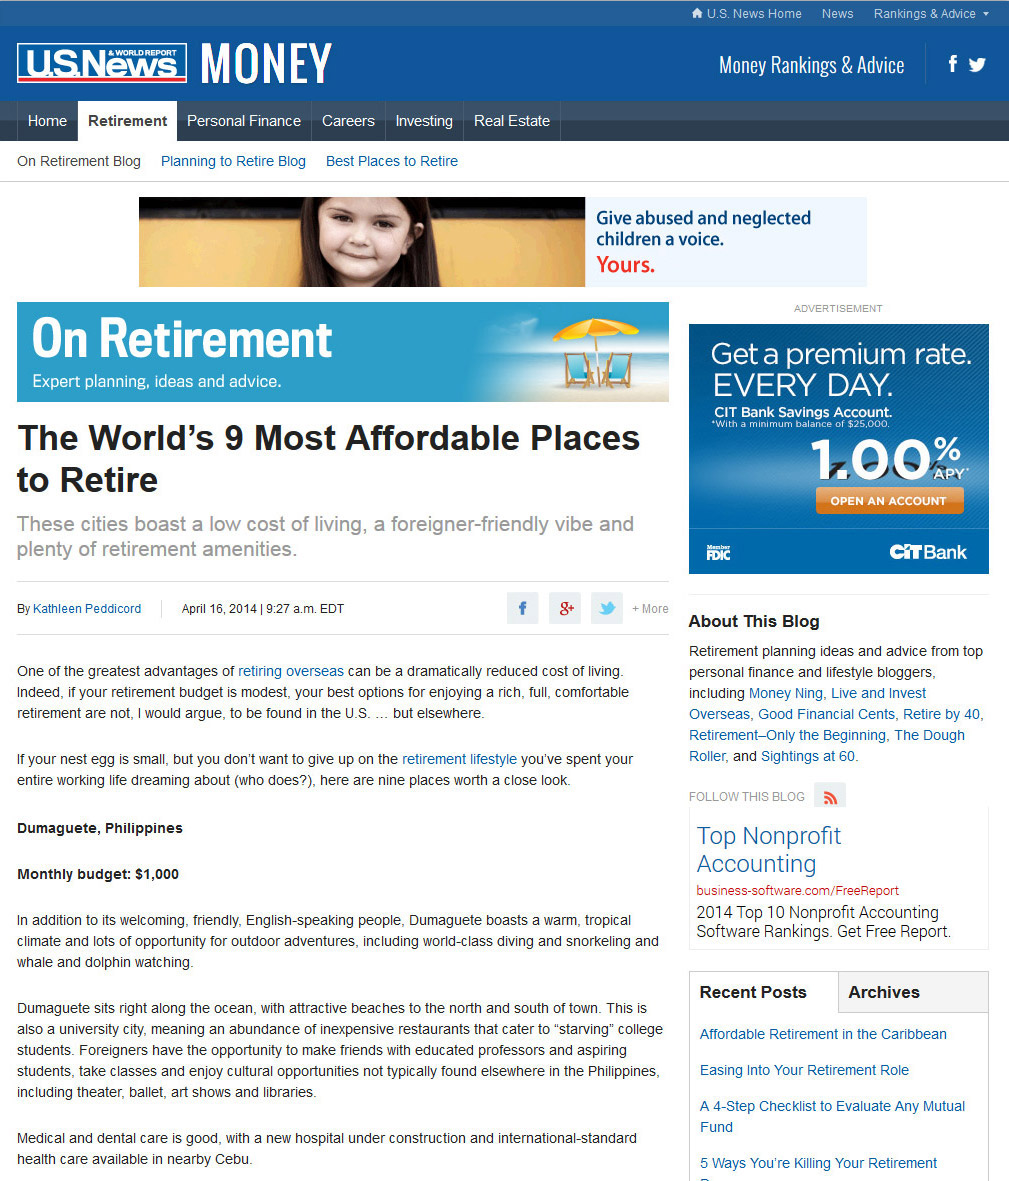 Dumaguete Tagged As One Of The World 39 S Best Places To Retire